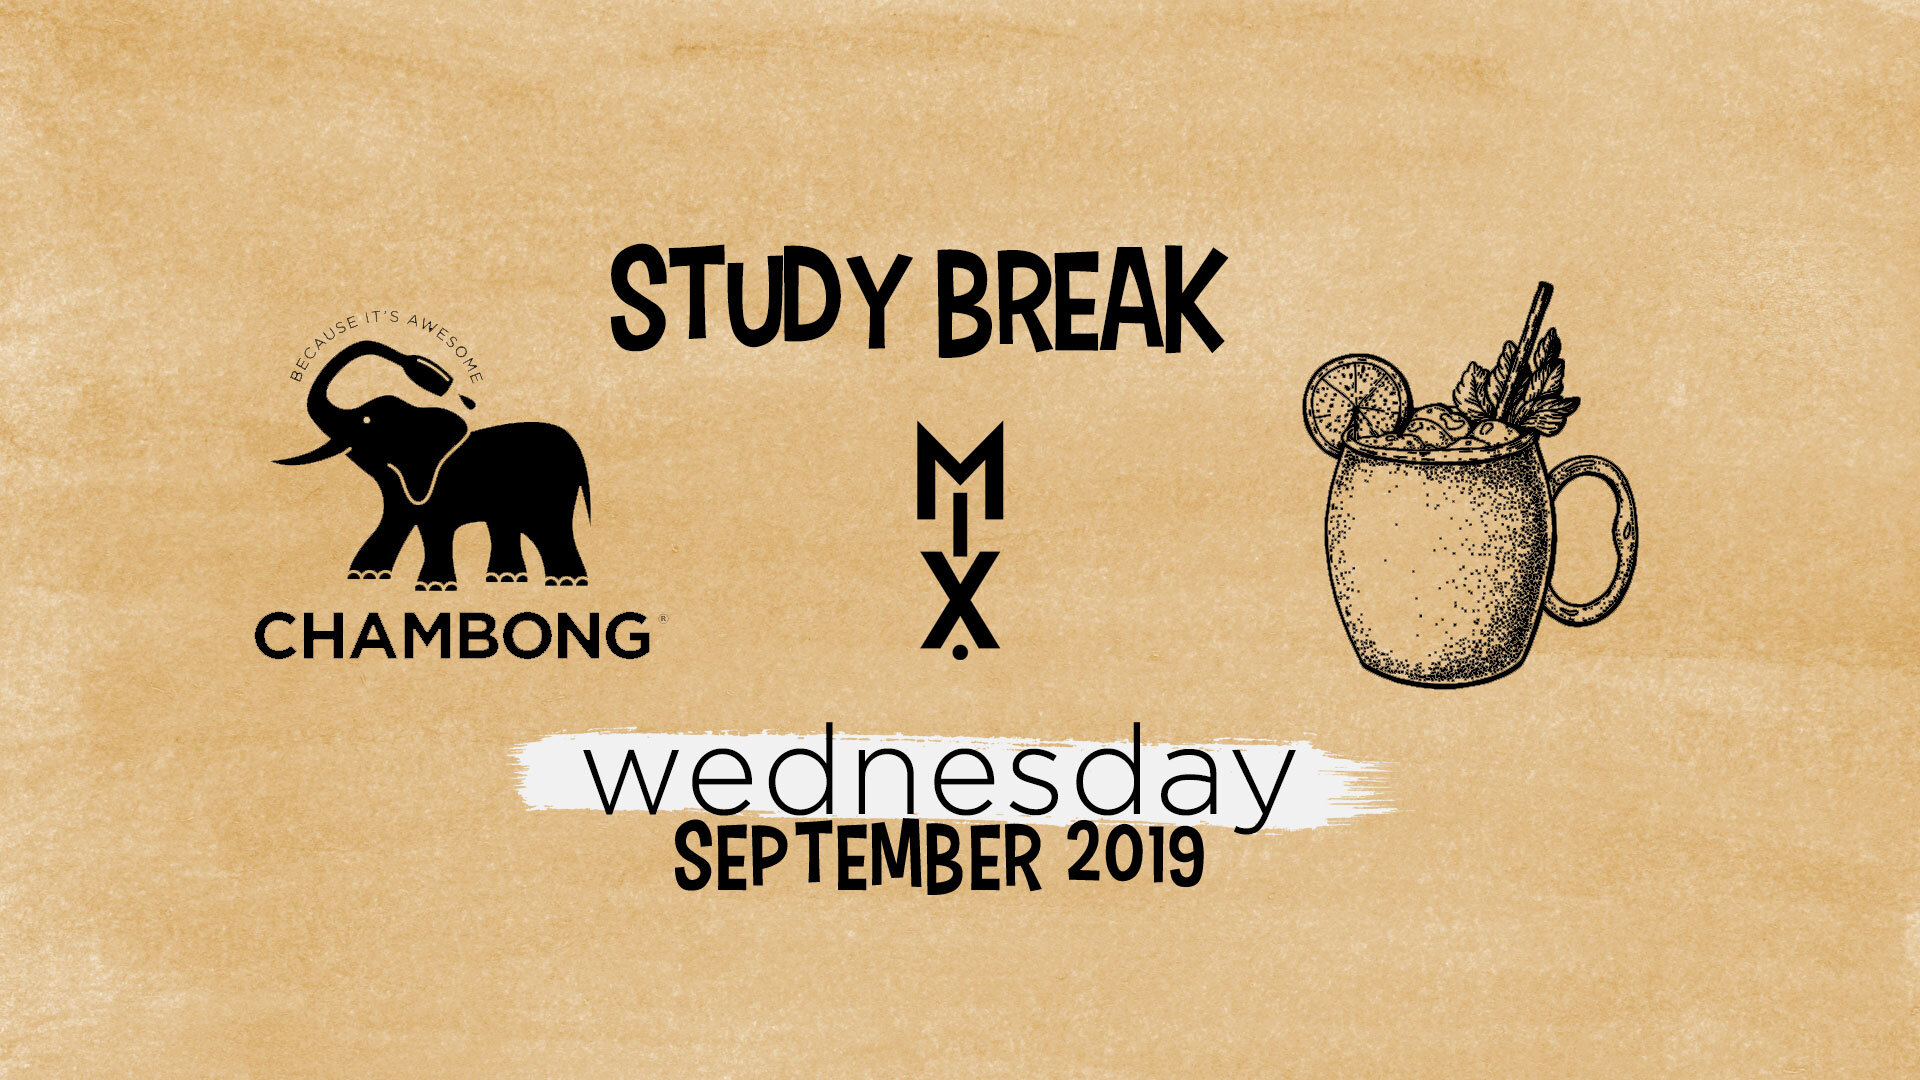 09 2019 Mix Wednesday Study Break.jpg